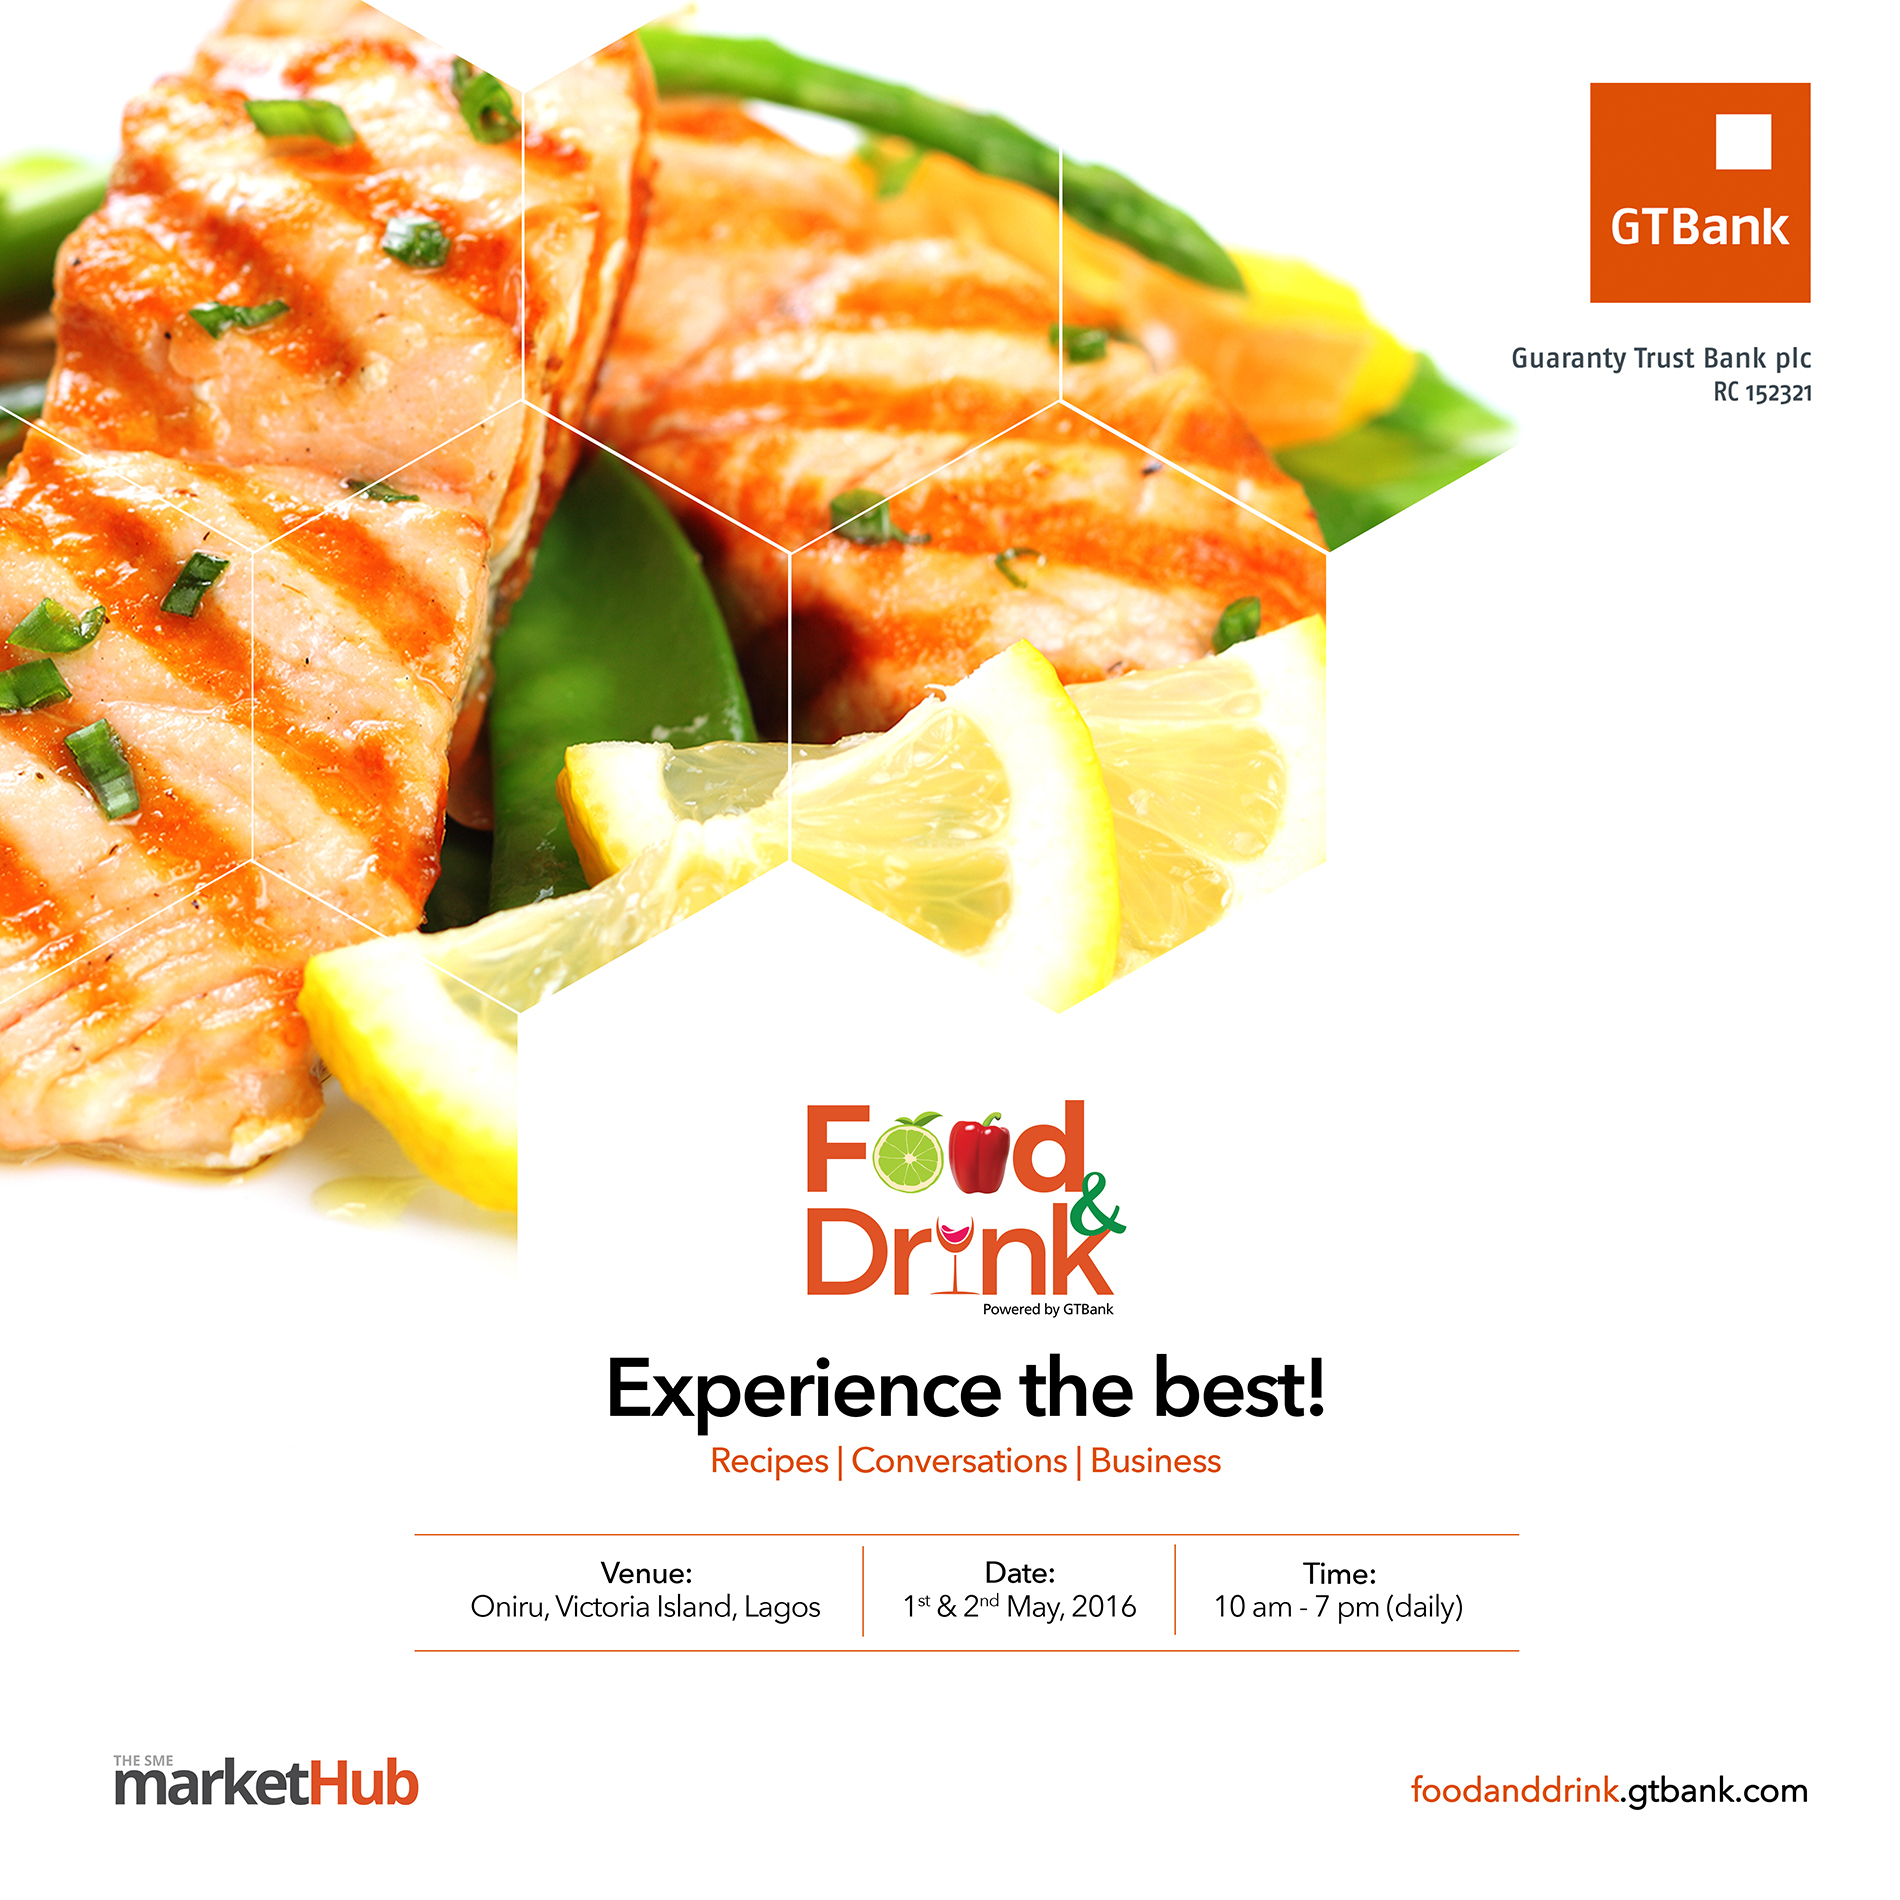 GTBank Spices up Lagos with Food and Drink Fair - Foodies you can't miss this!